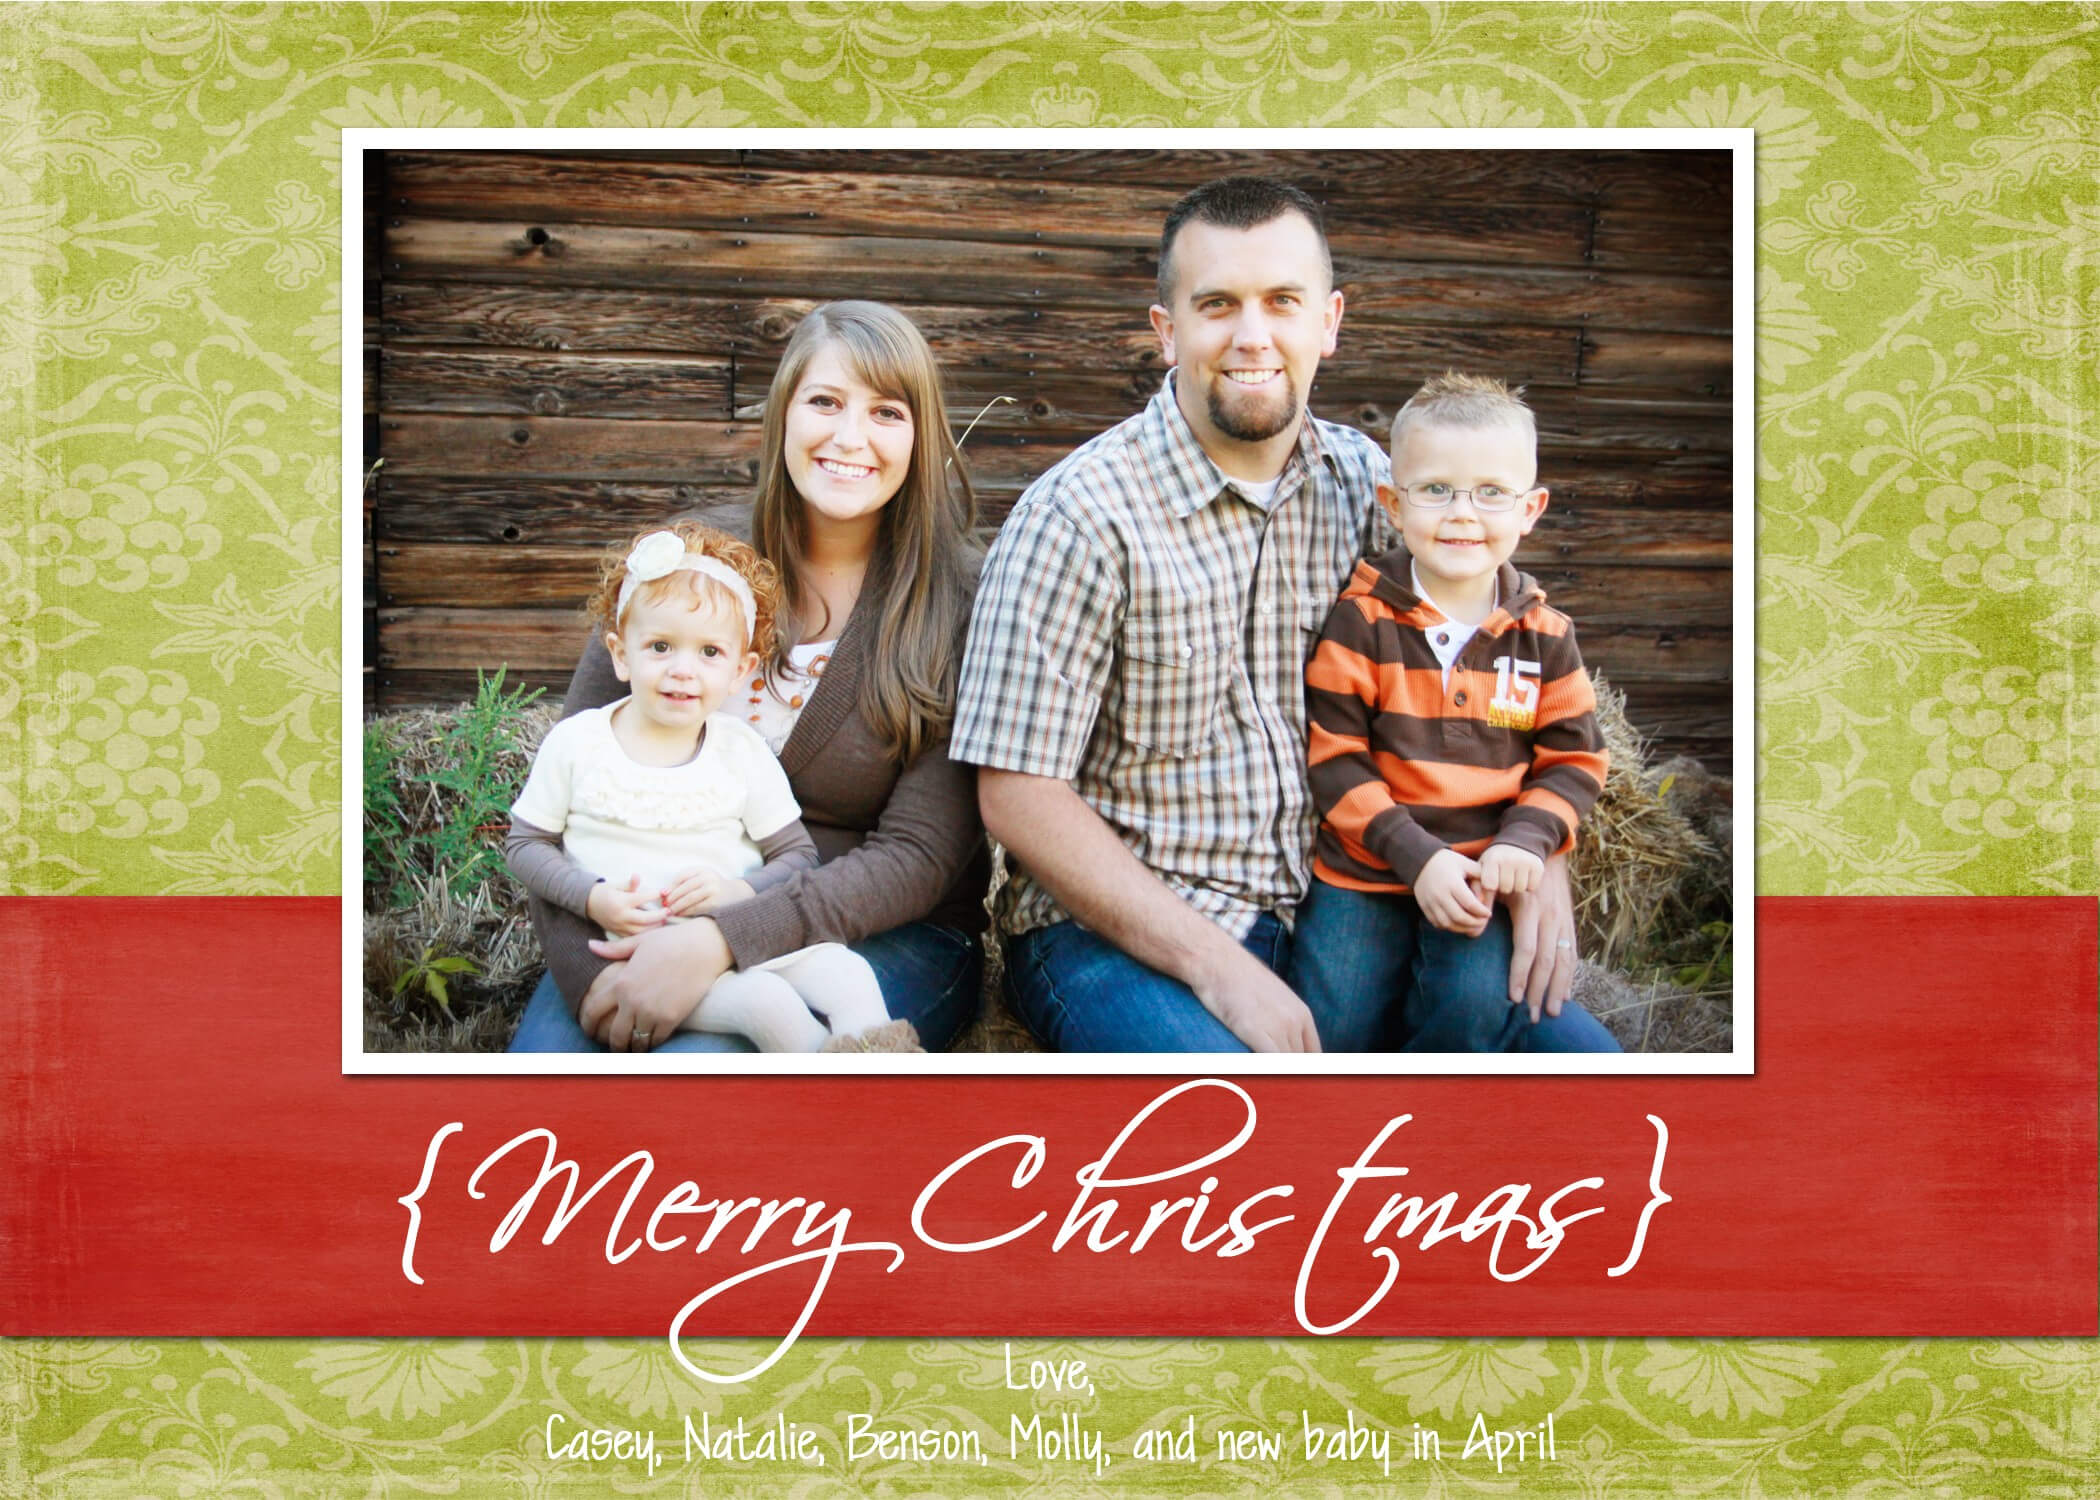 Christmas Card Templates For Photoshop Kamenitzafanclub Throughout Free Christmas Card Templates For Photographers